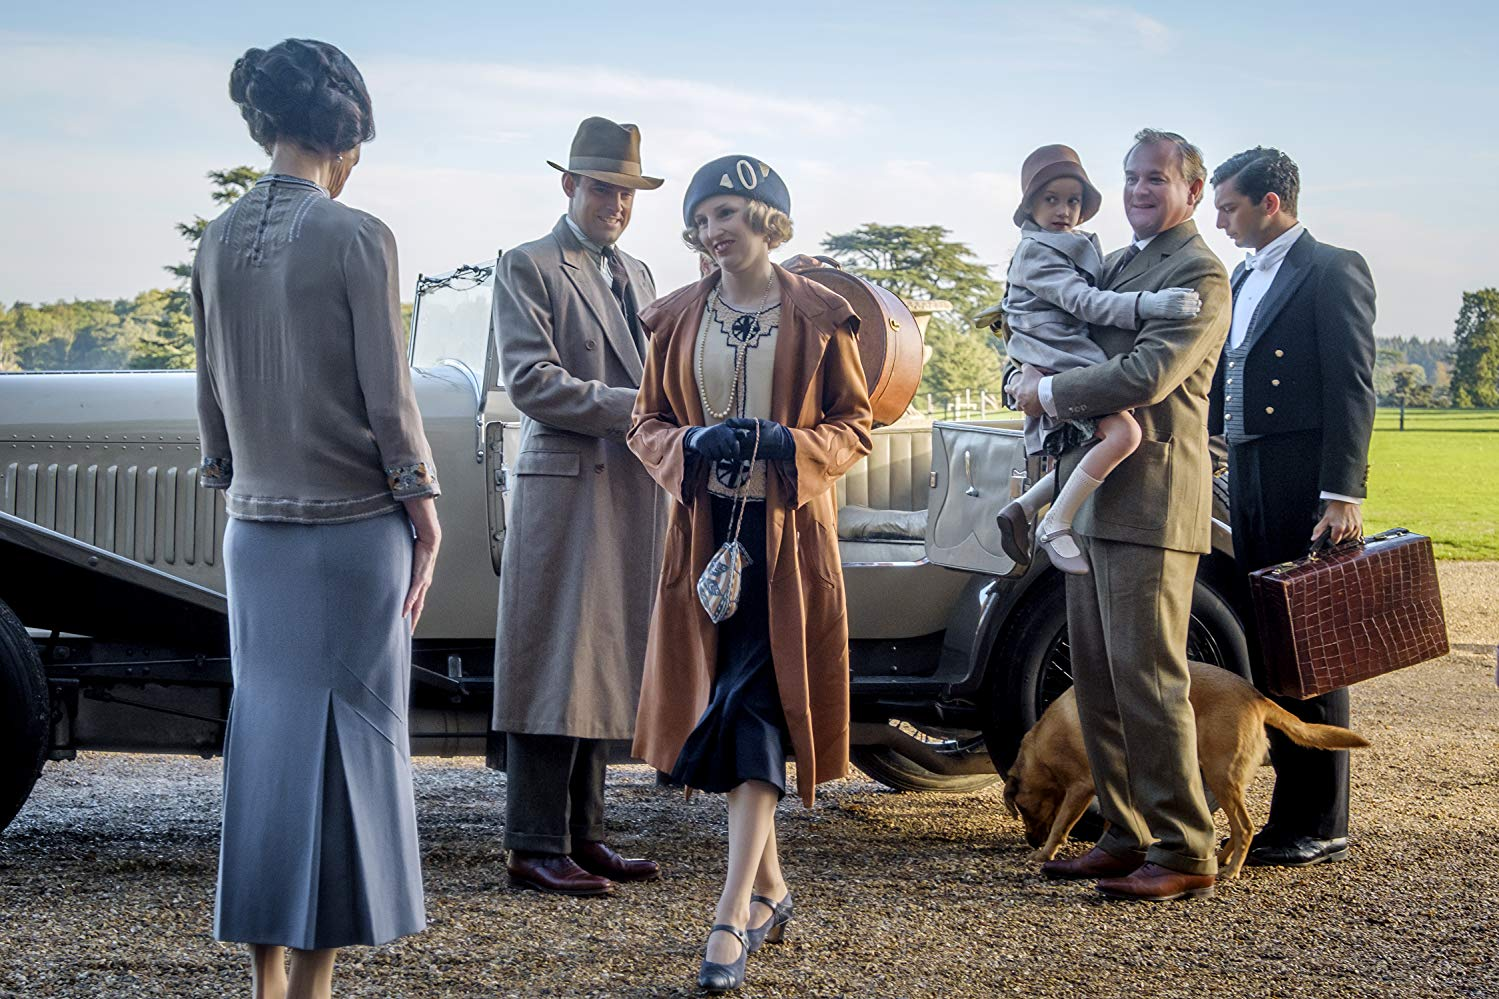 Review: Tears of joy, happy ending for Downton Abbey